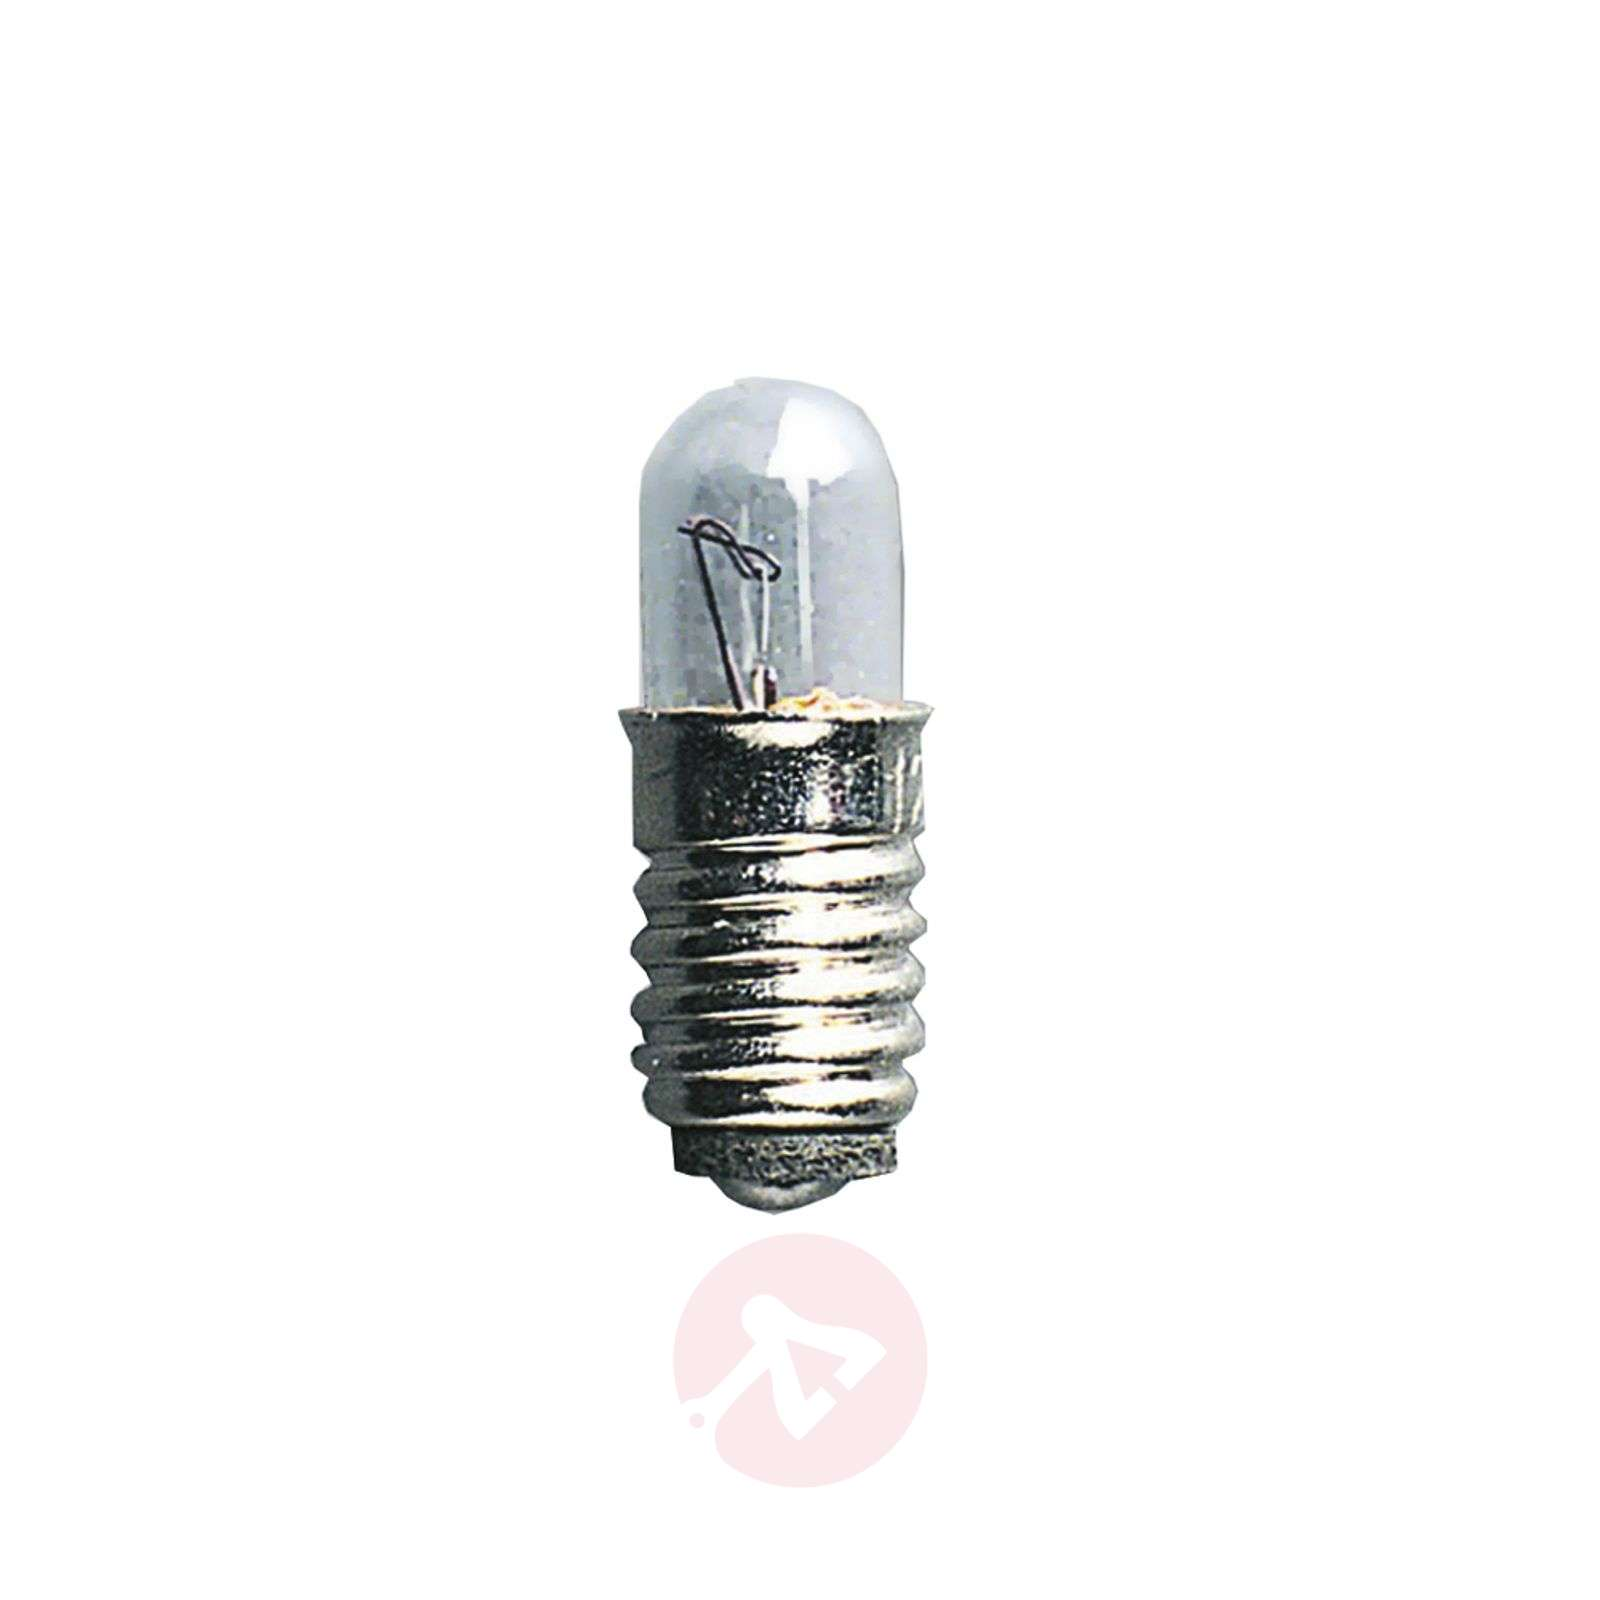 Ampoules de rechange basse tension E5 1,2W 12V-1522095-01